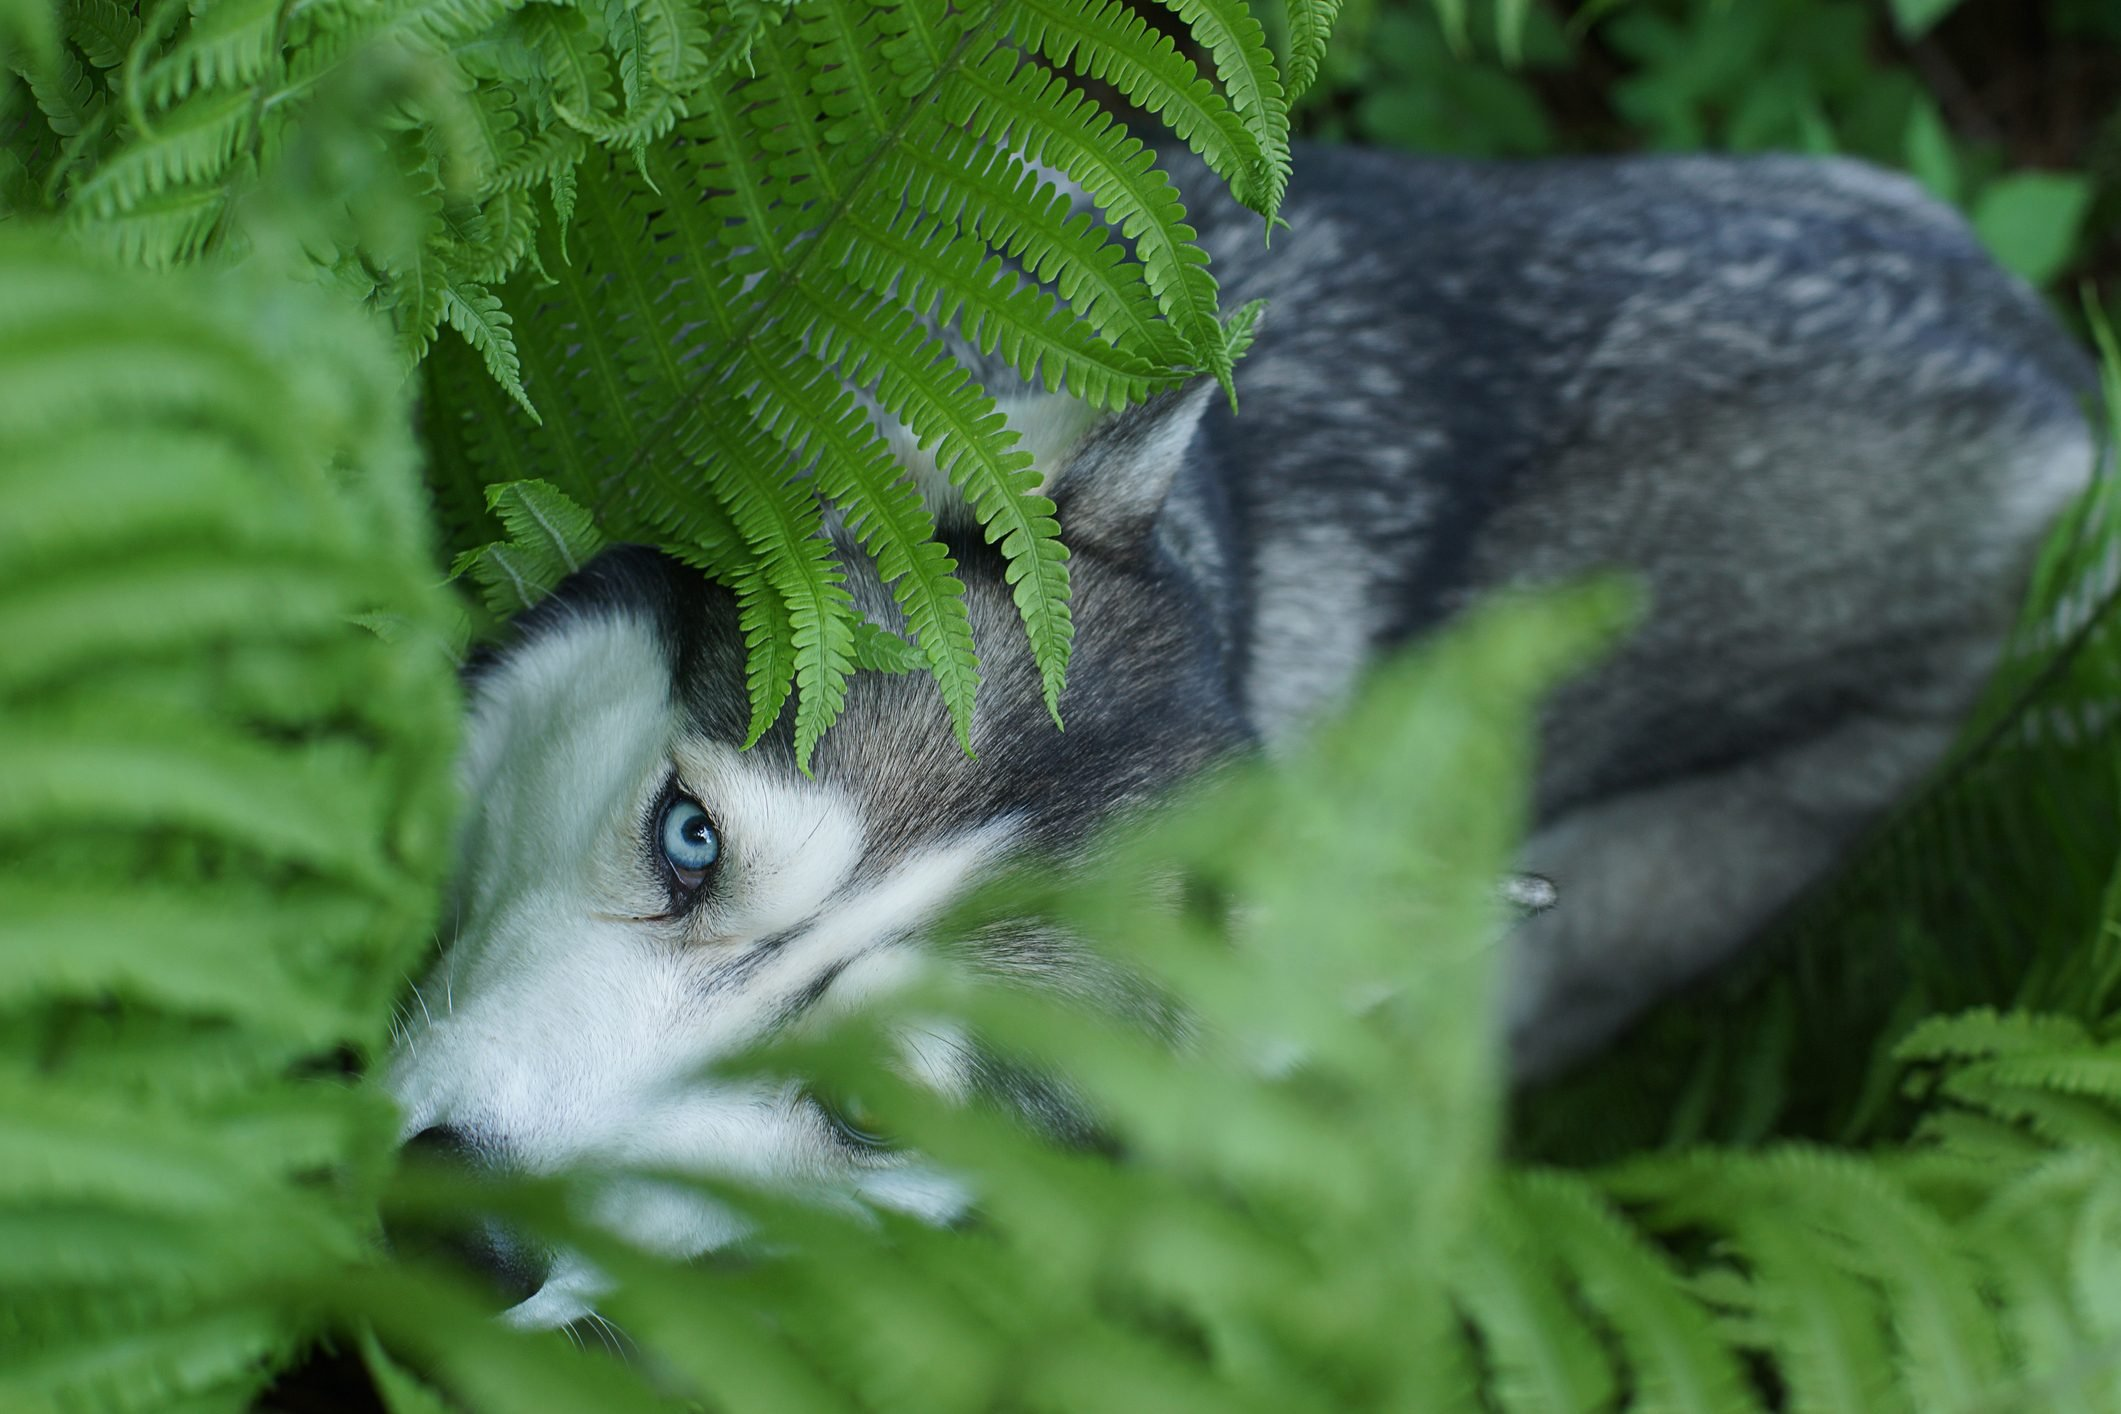 A blue-eyed husky breed dog hid in the fern bushes in summer